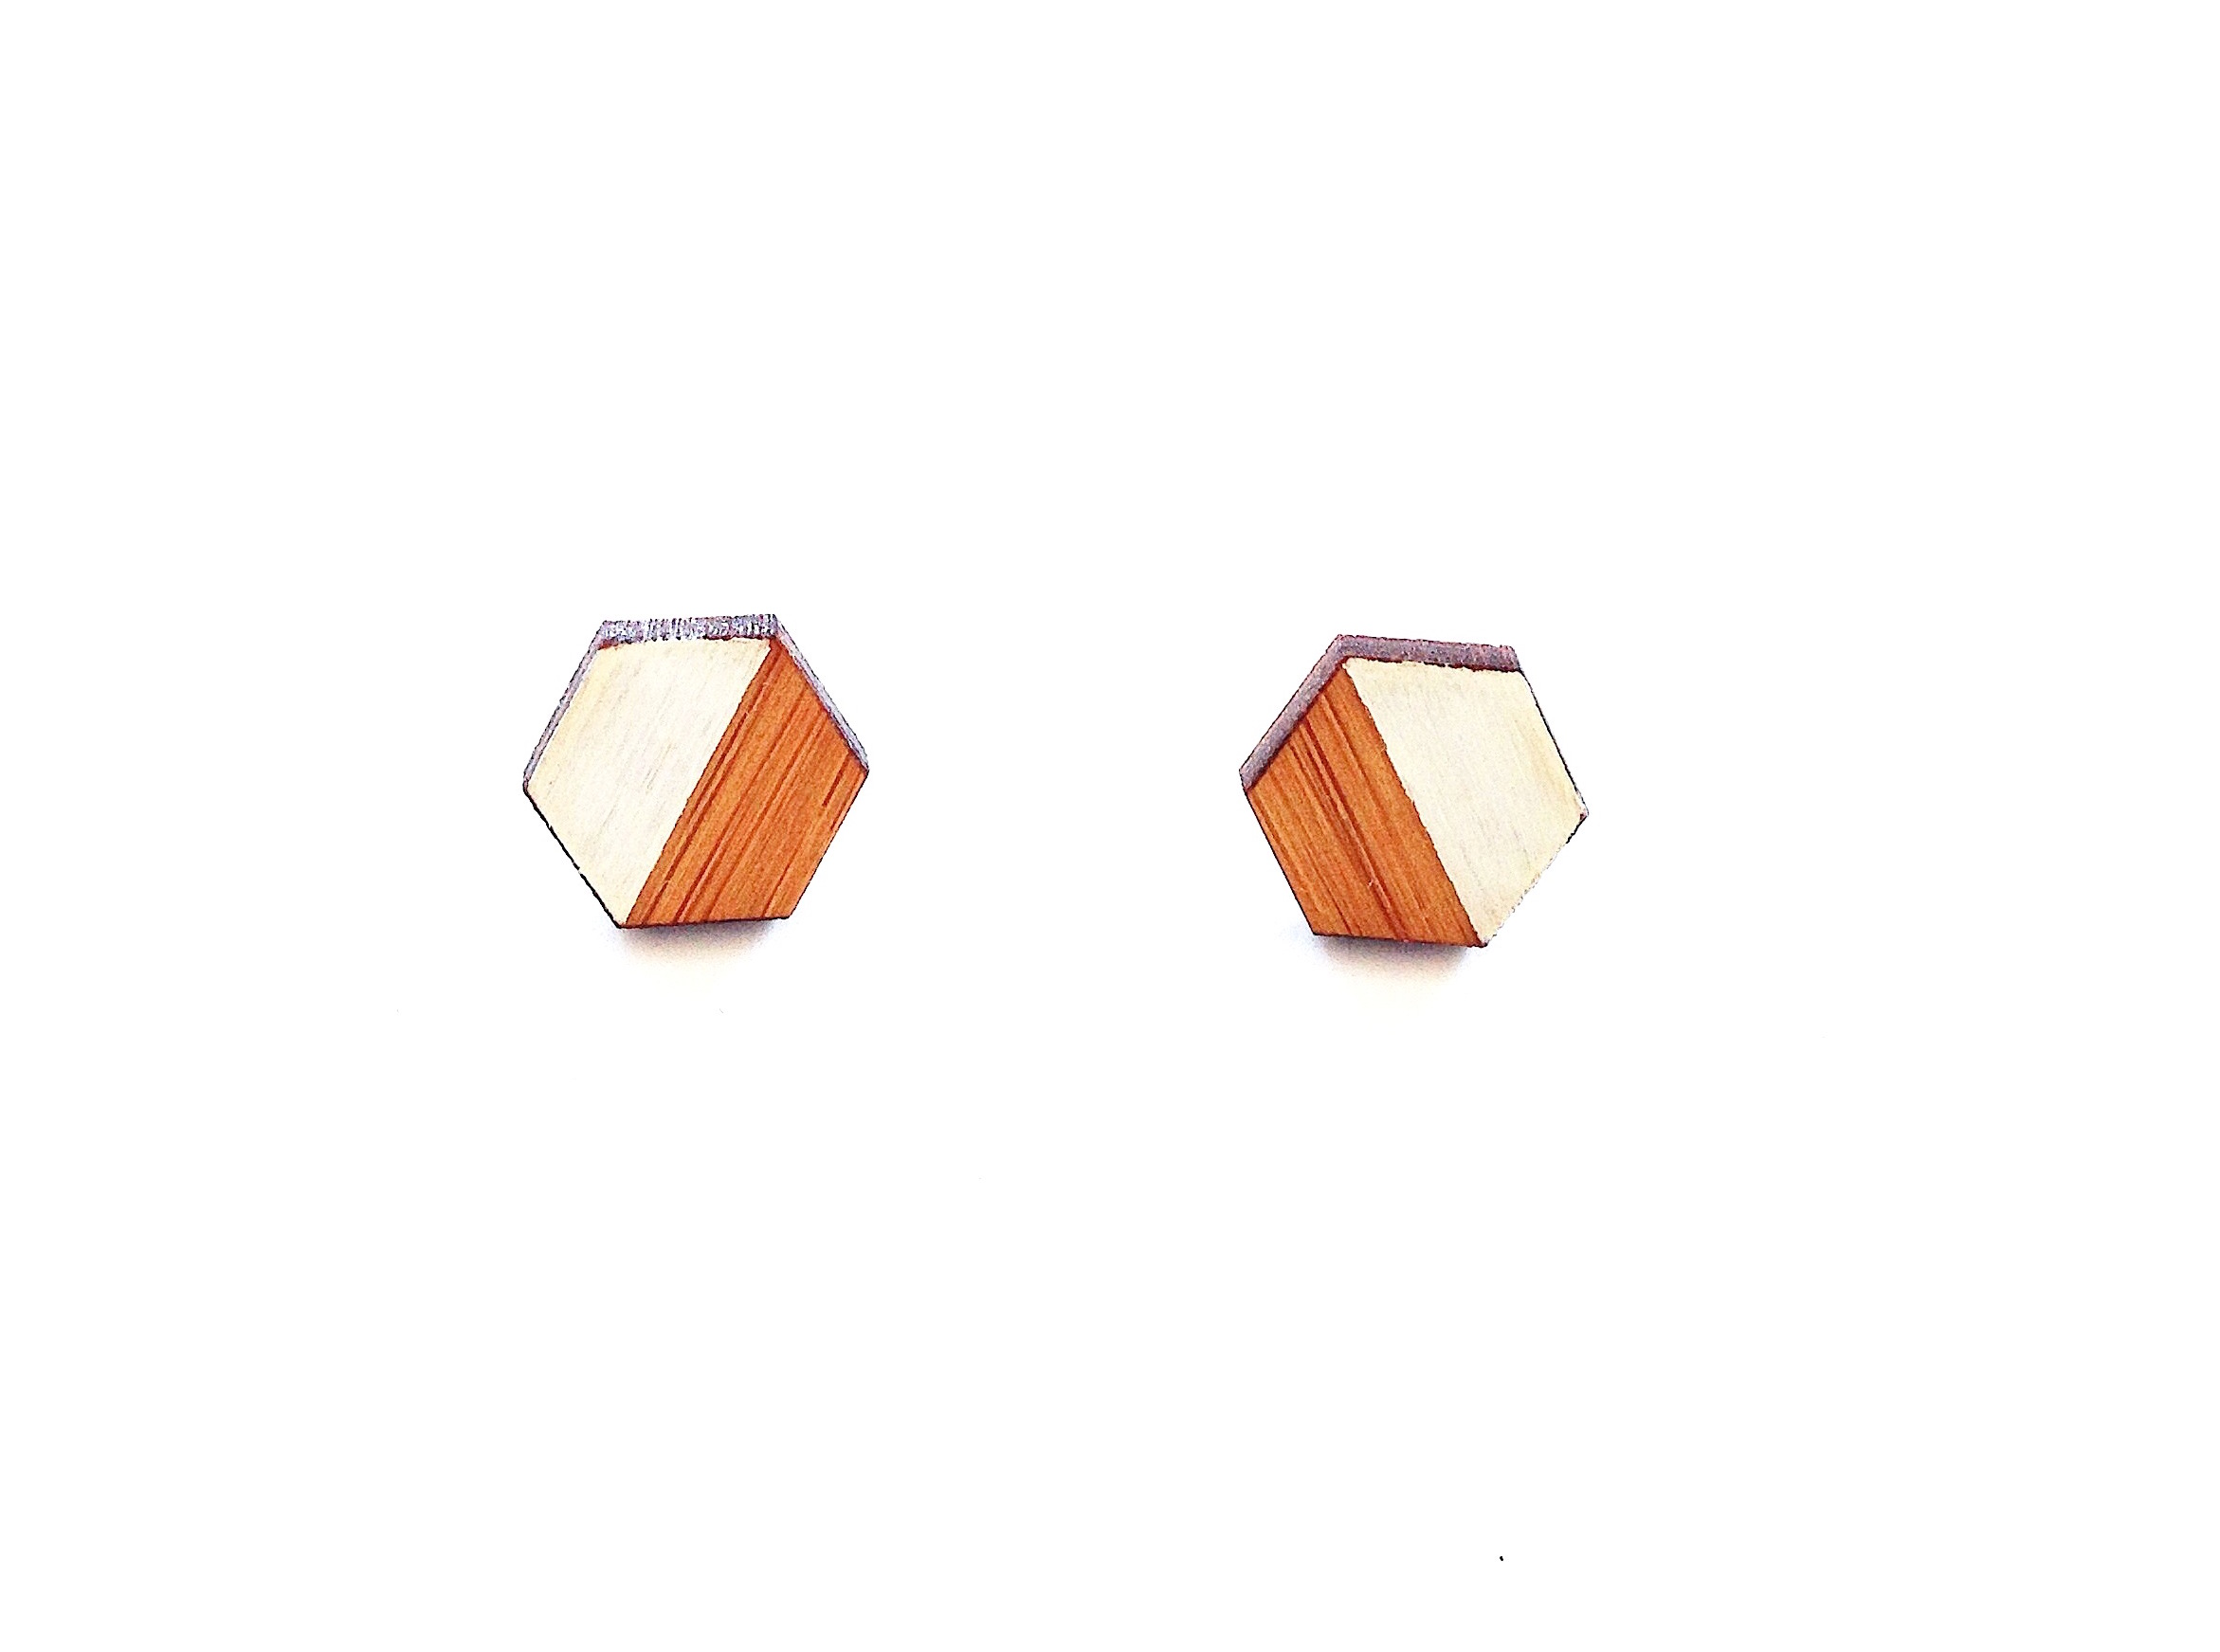 E5 Wood & Fog Hexagons.JPG